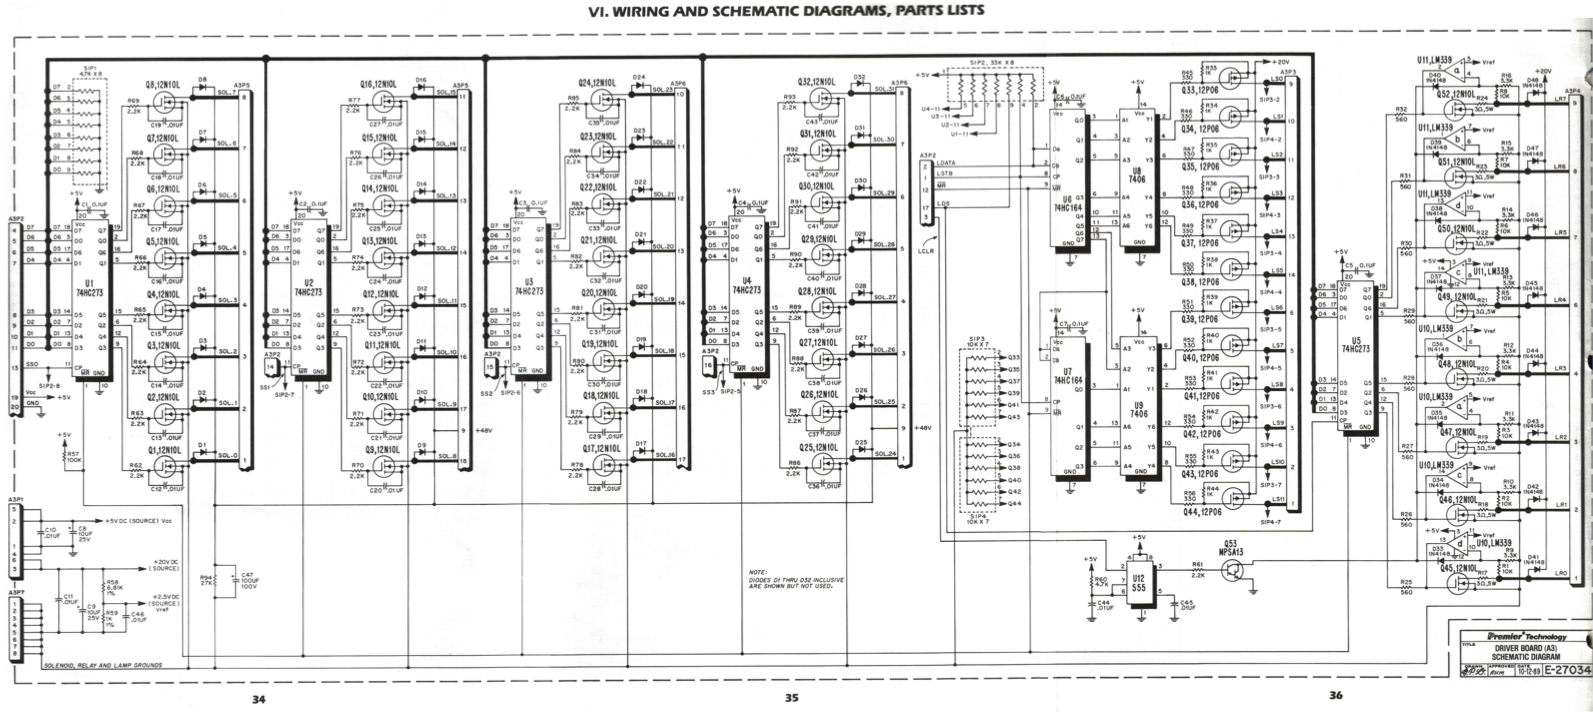 File:Gottlieb-system-3-image.png